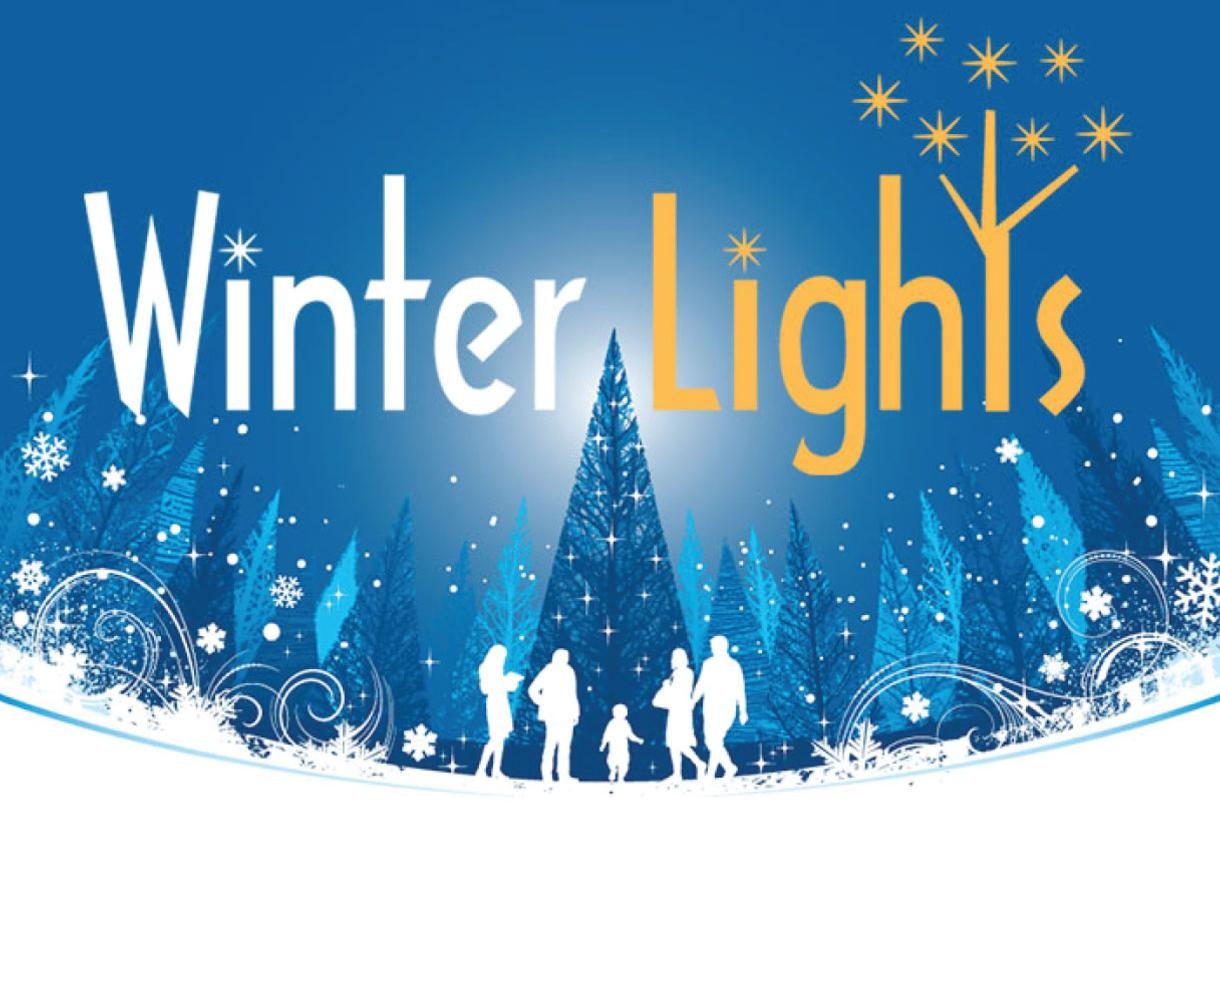 $8 for Week Night Admission for One Car to the City of Gaithersburg Winter Lights Festival + 2 Pair of Prism Glasses (50% Off)